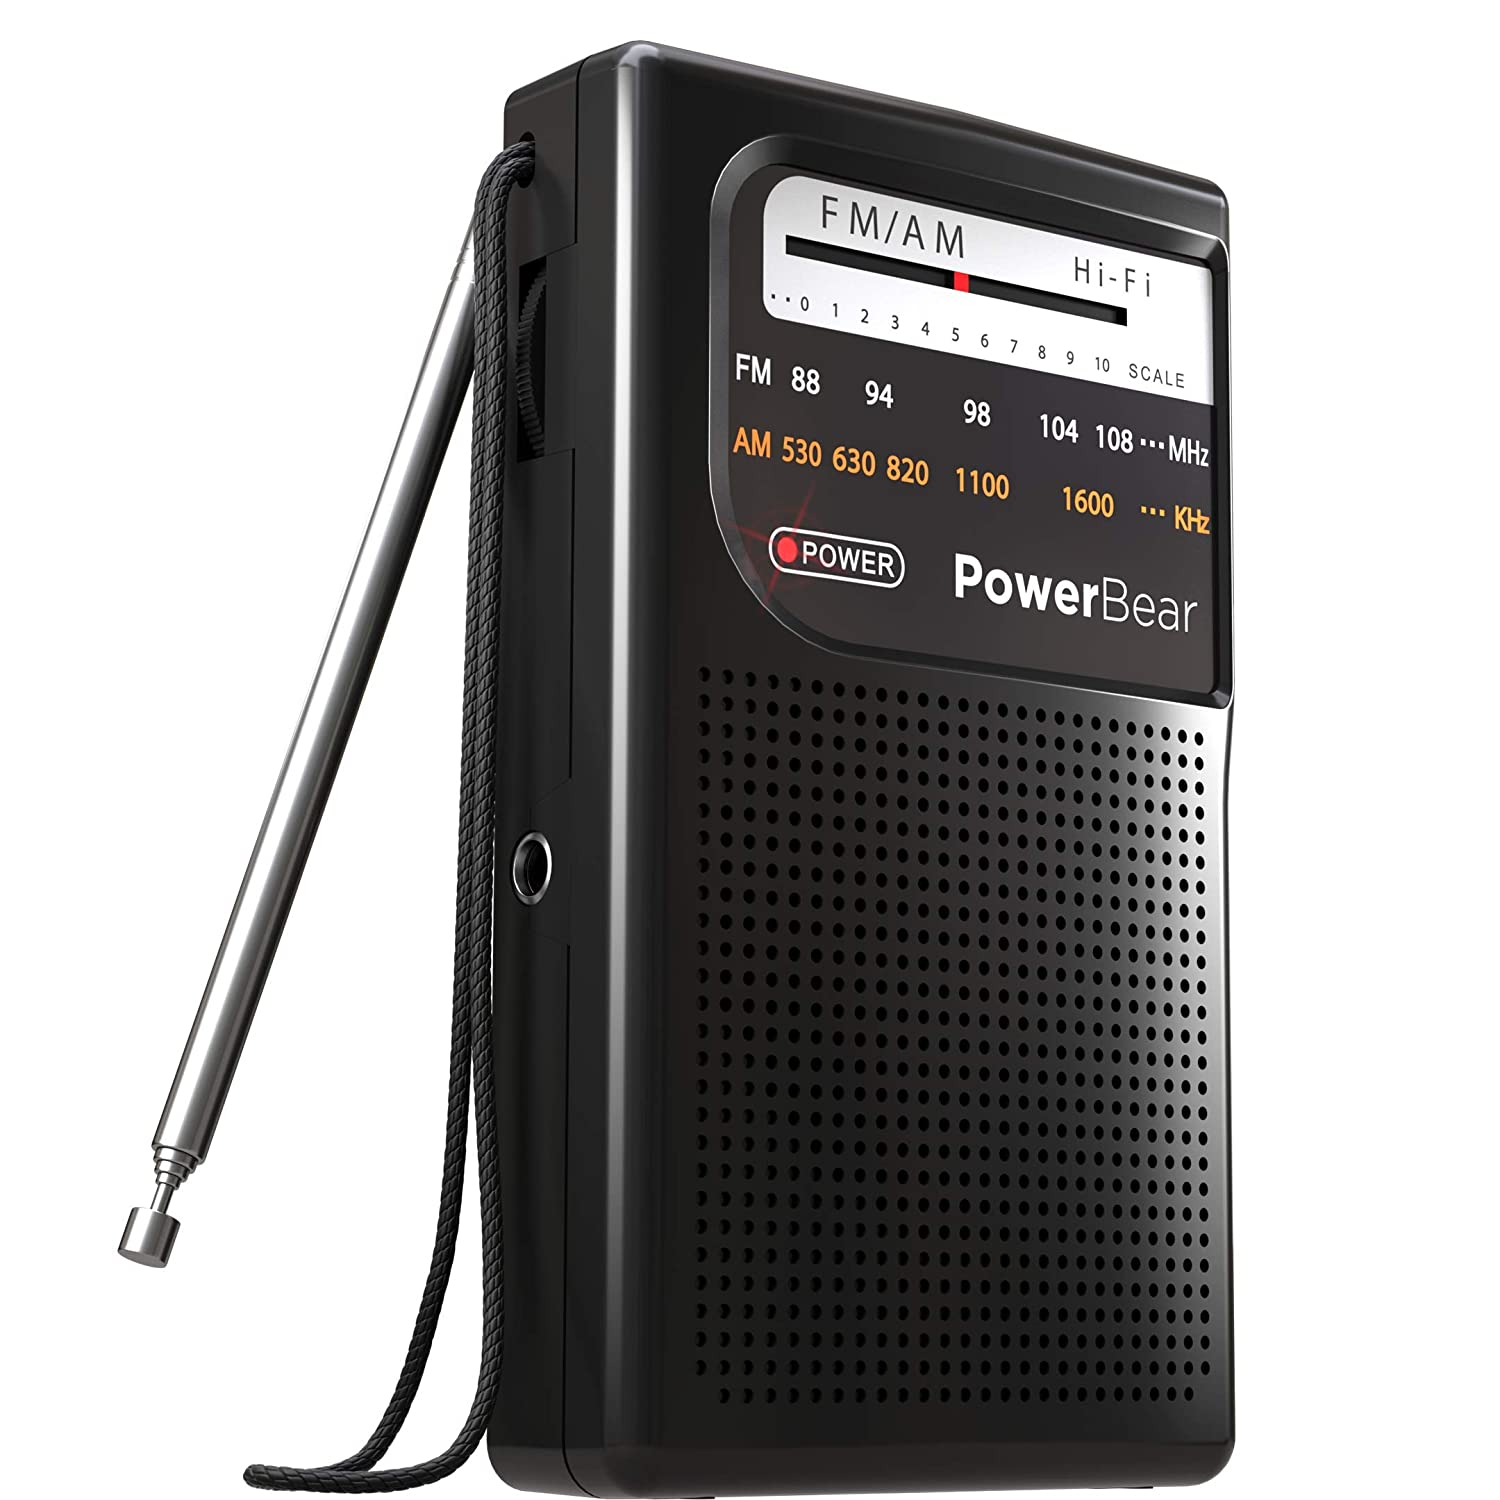 PowerBear AM FM Portable Radio | Battery Operated, Long Range, Handheld